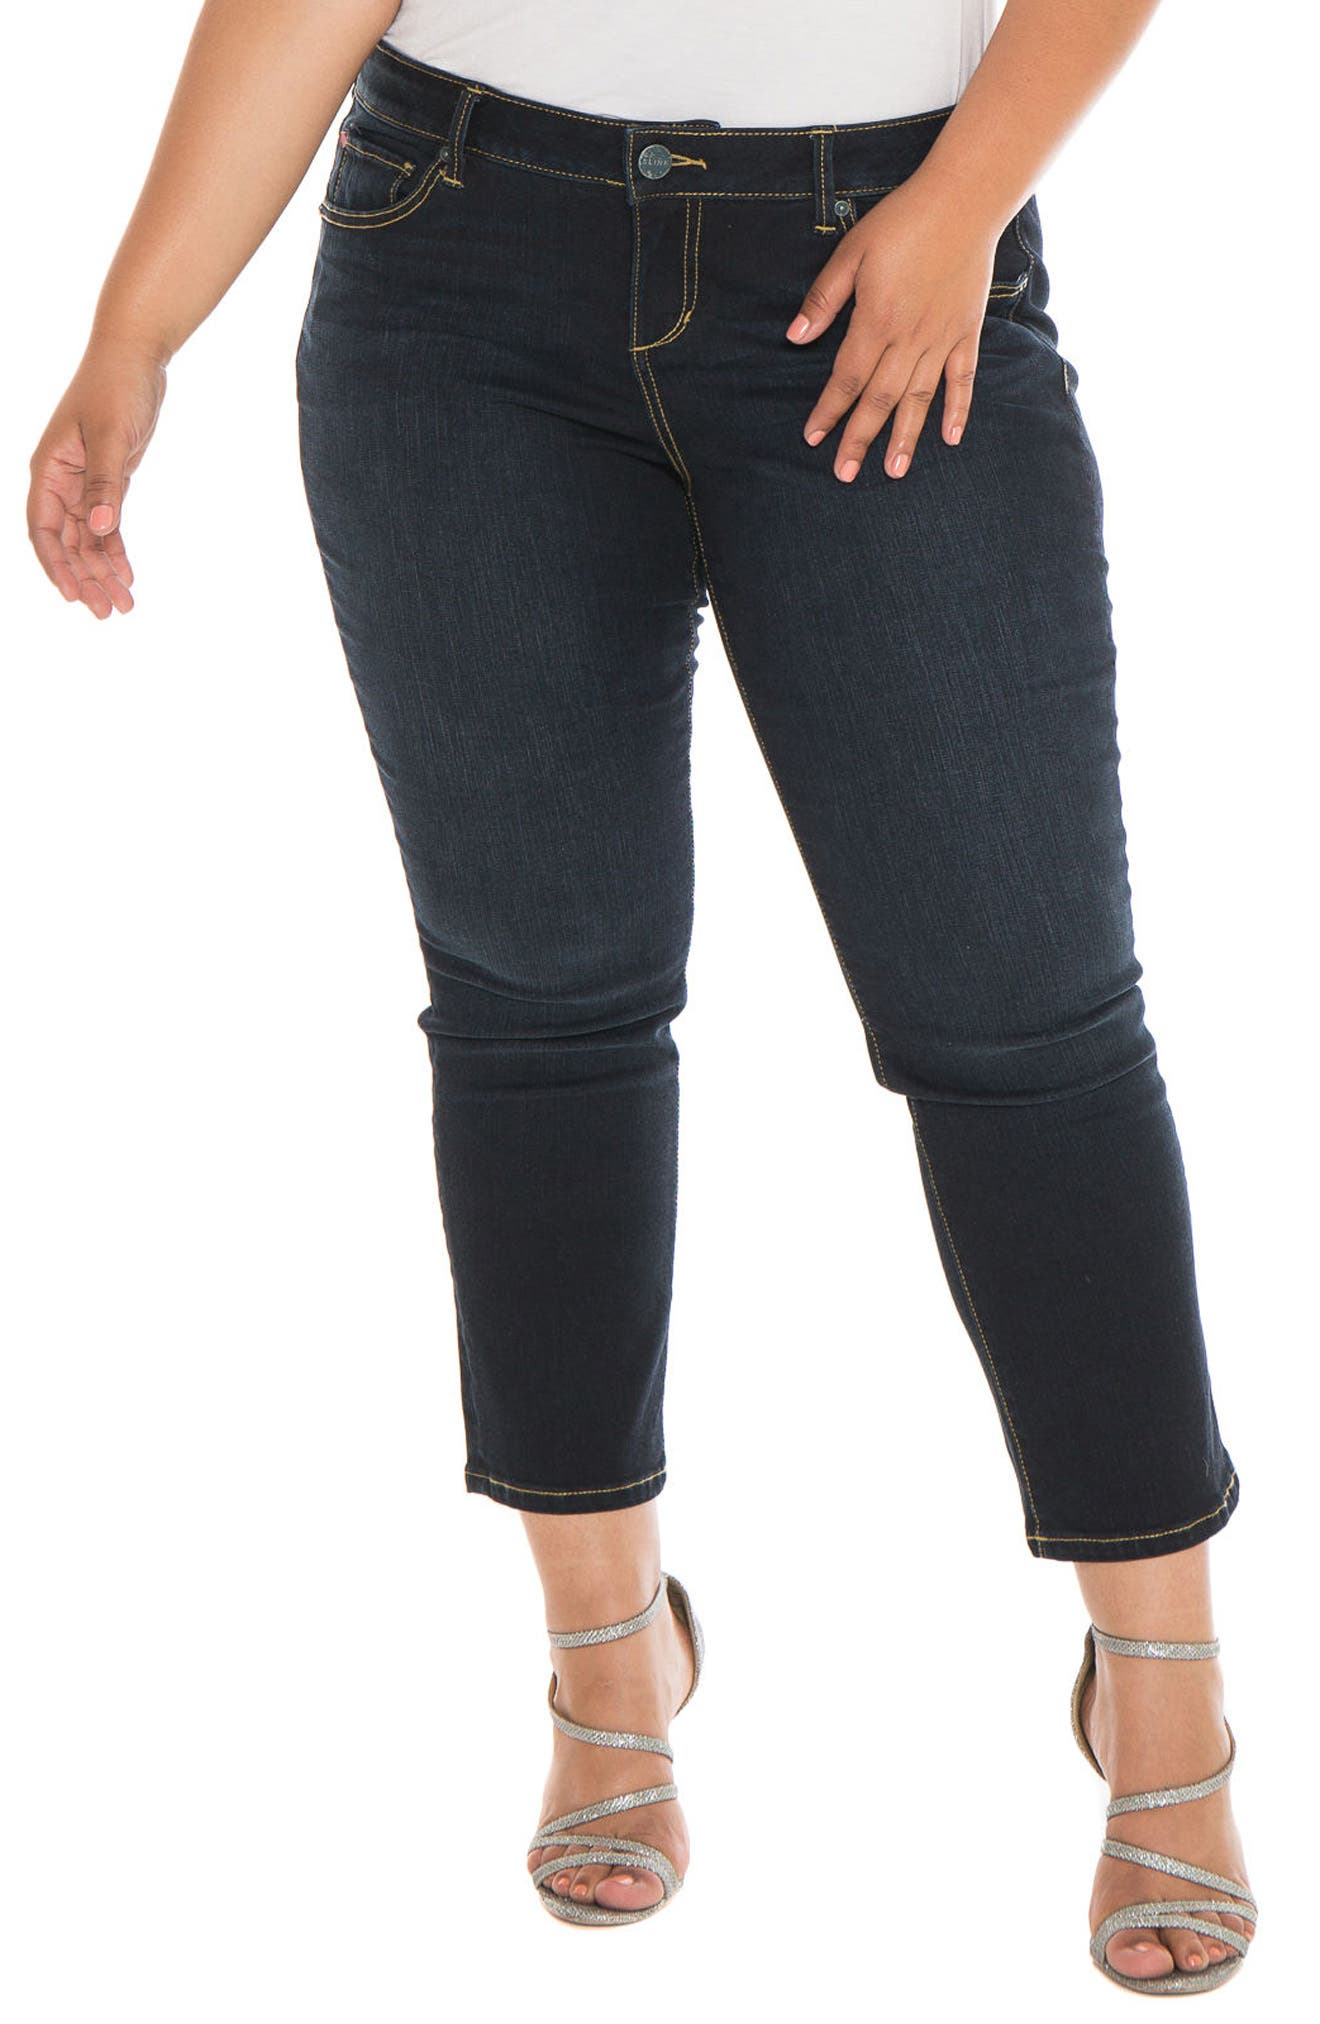 Alternate Image 1 Selected - SLINK Jeans Straight Leg Jeans (Summer) (Plus Size)